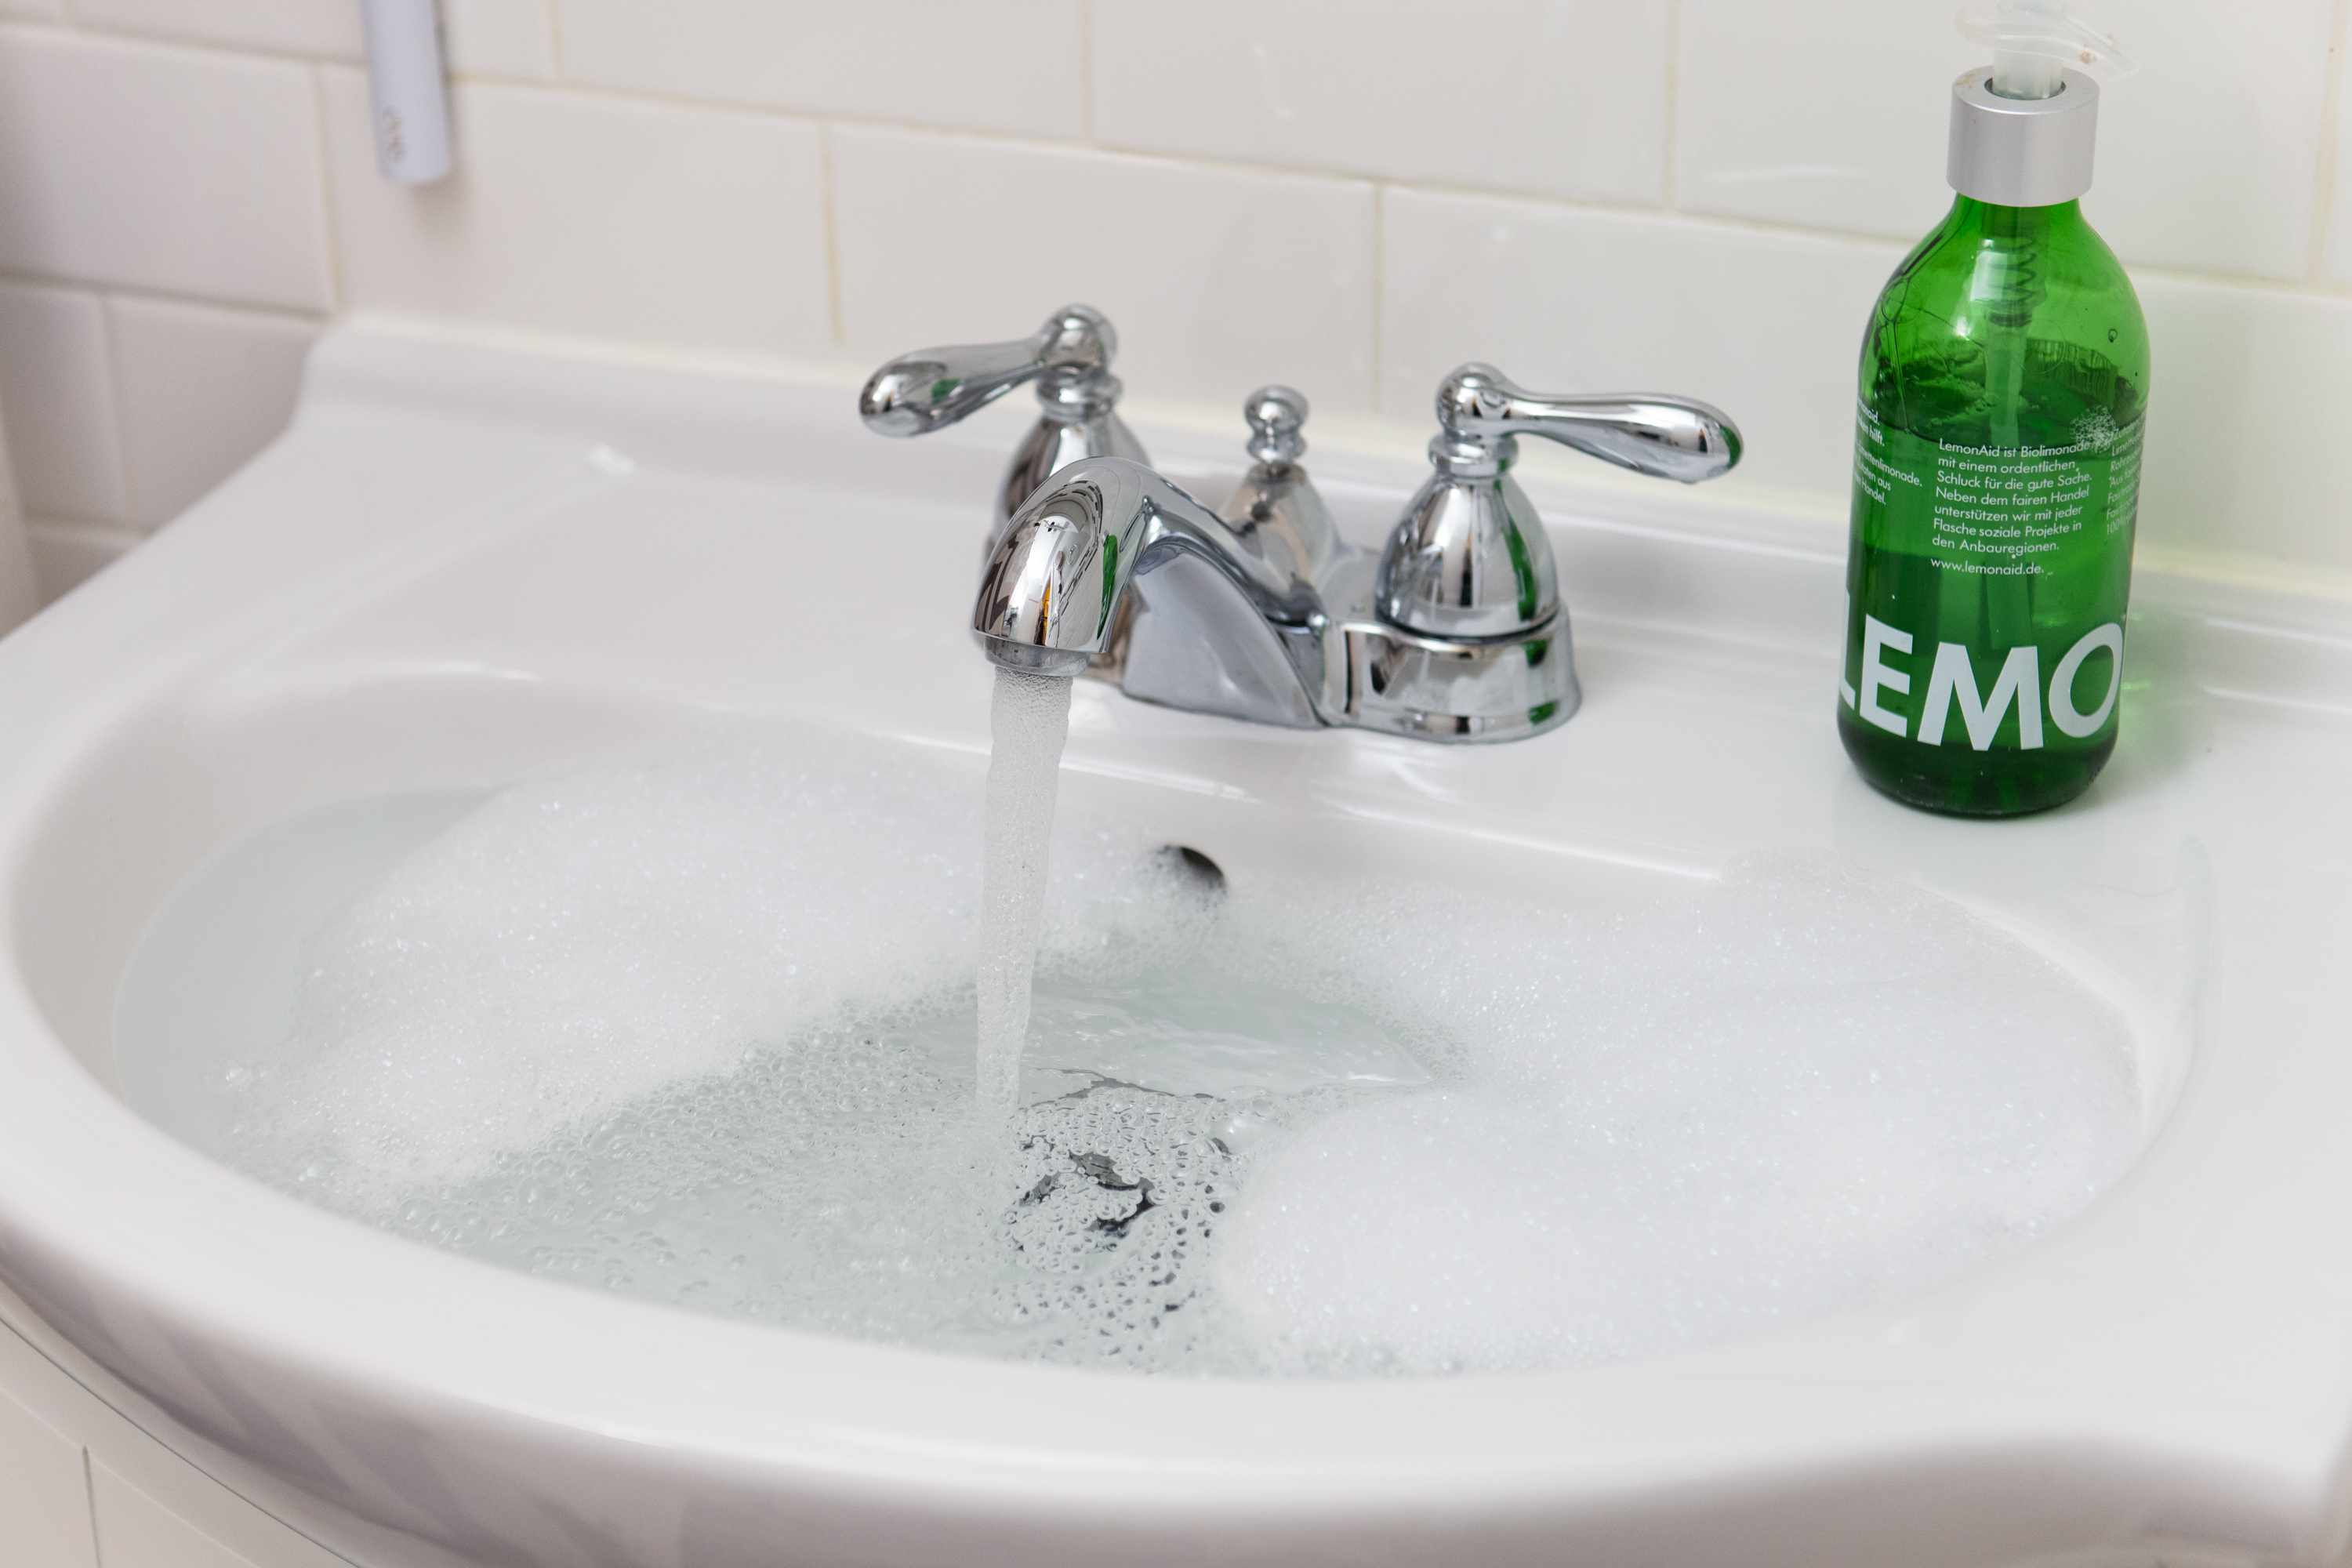 Flushing the sink with water from the tap